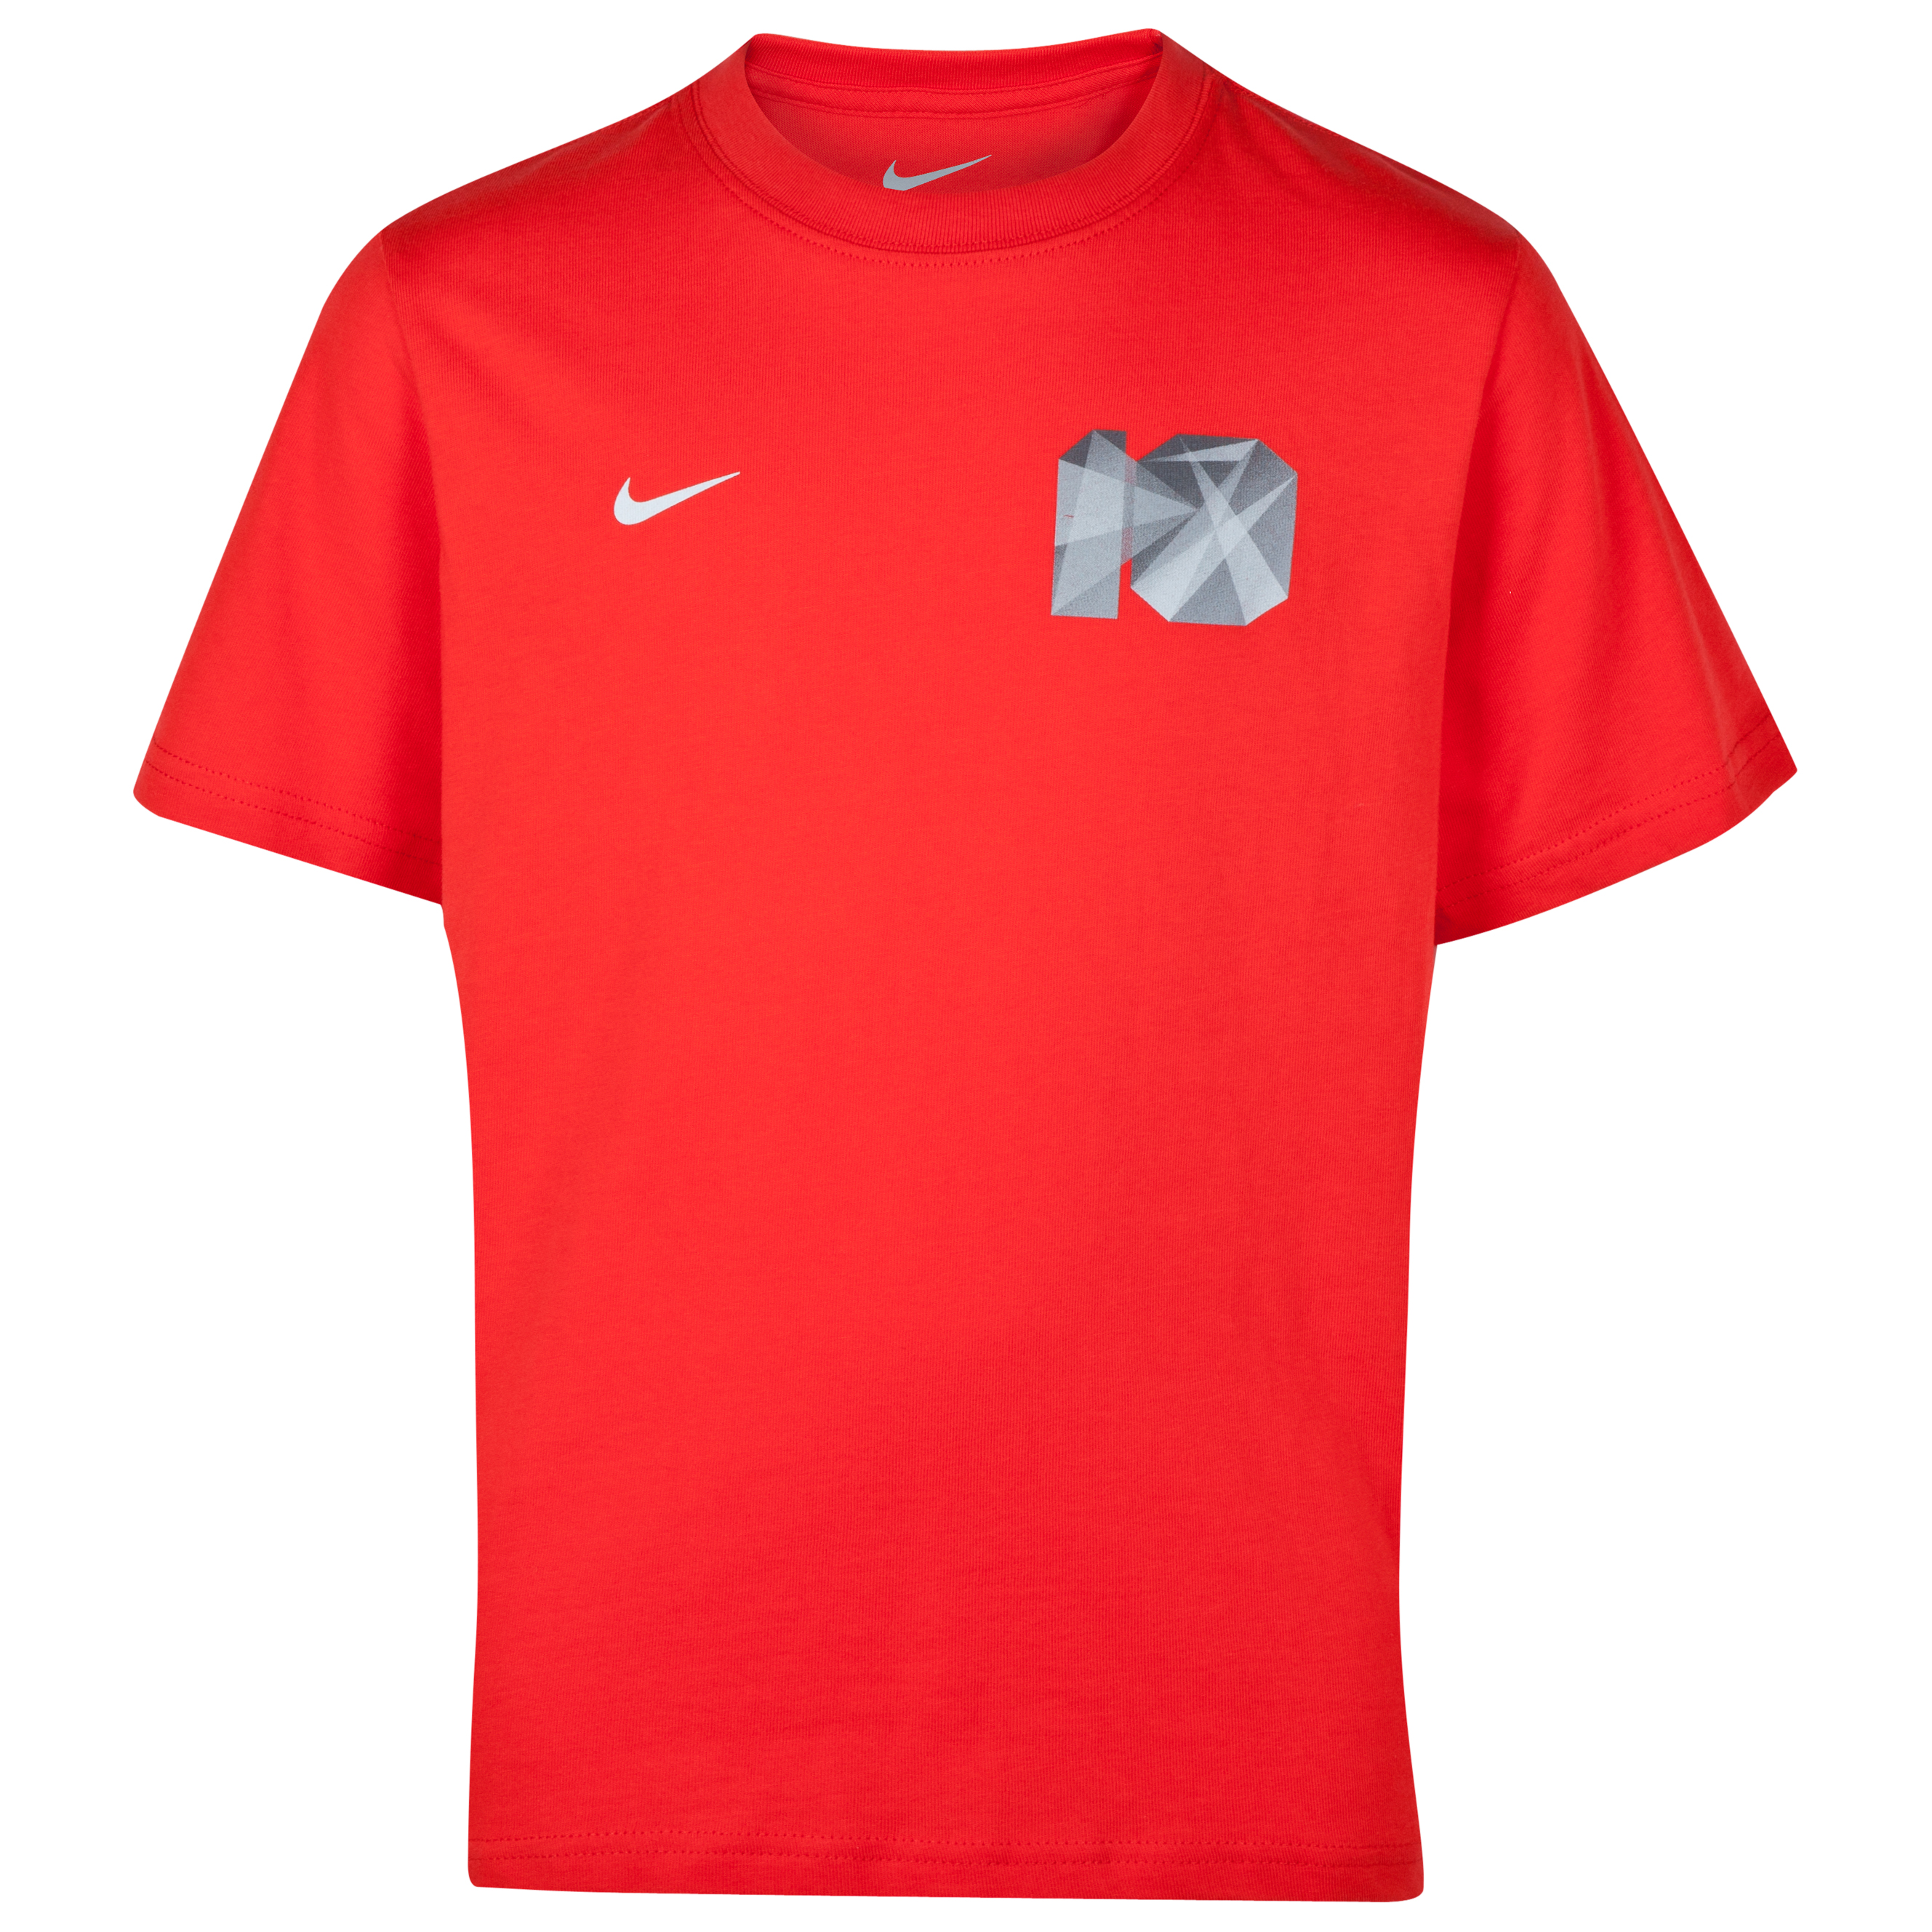 Nike Rooney Core Plus T-Shirt - Challenge Red - Kids